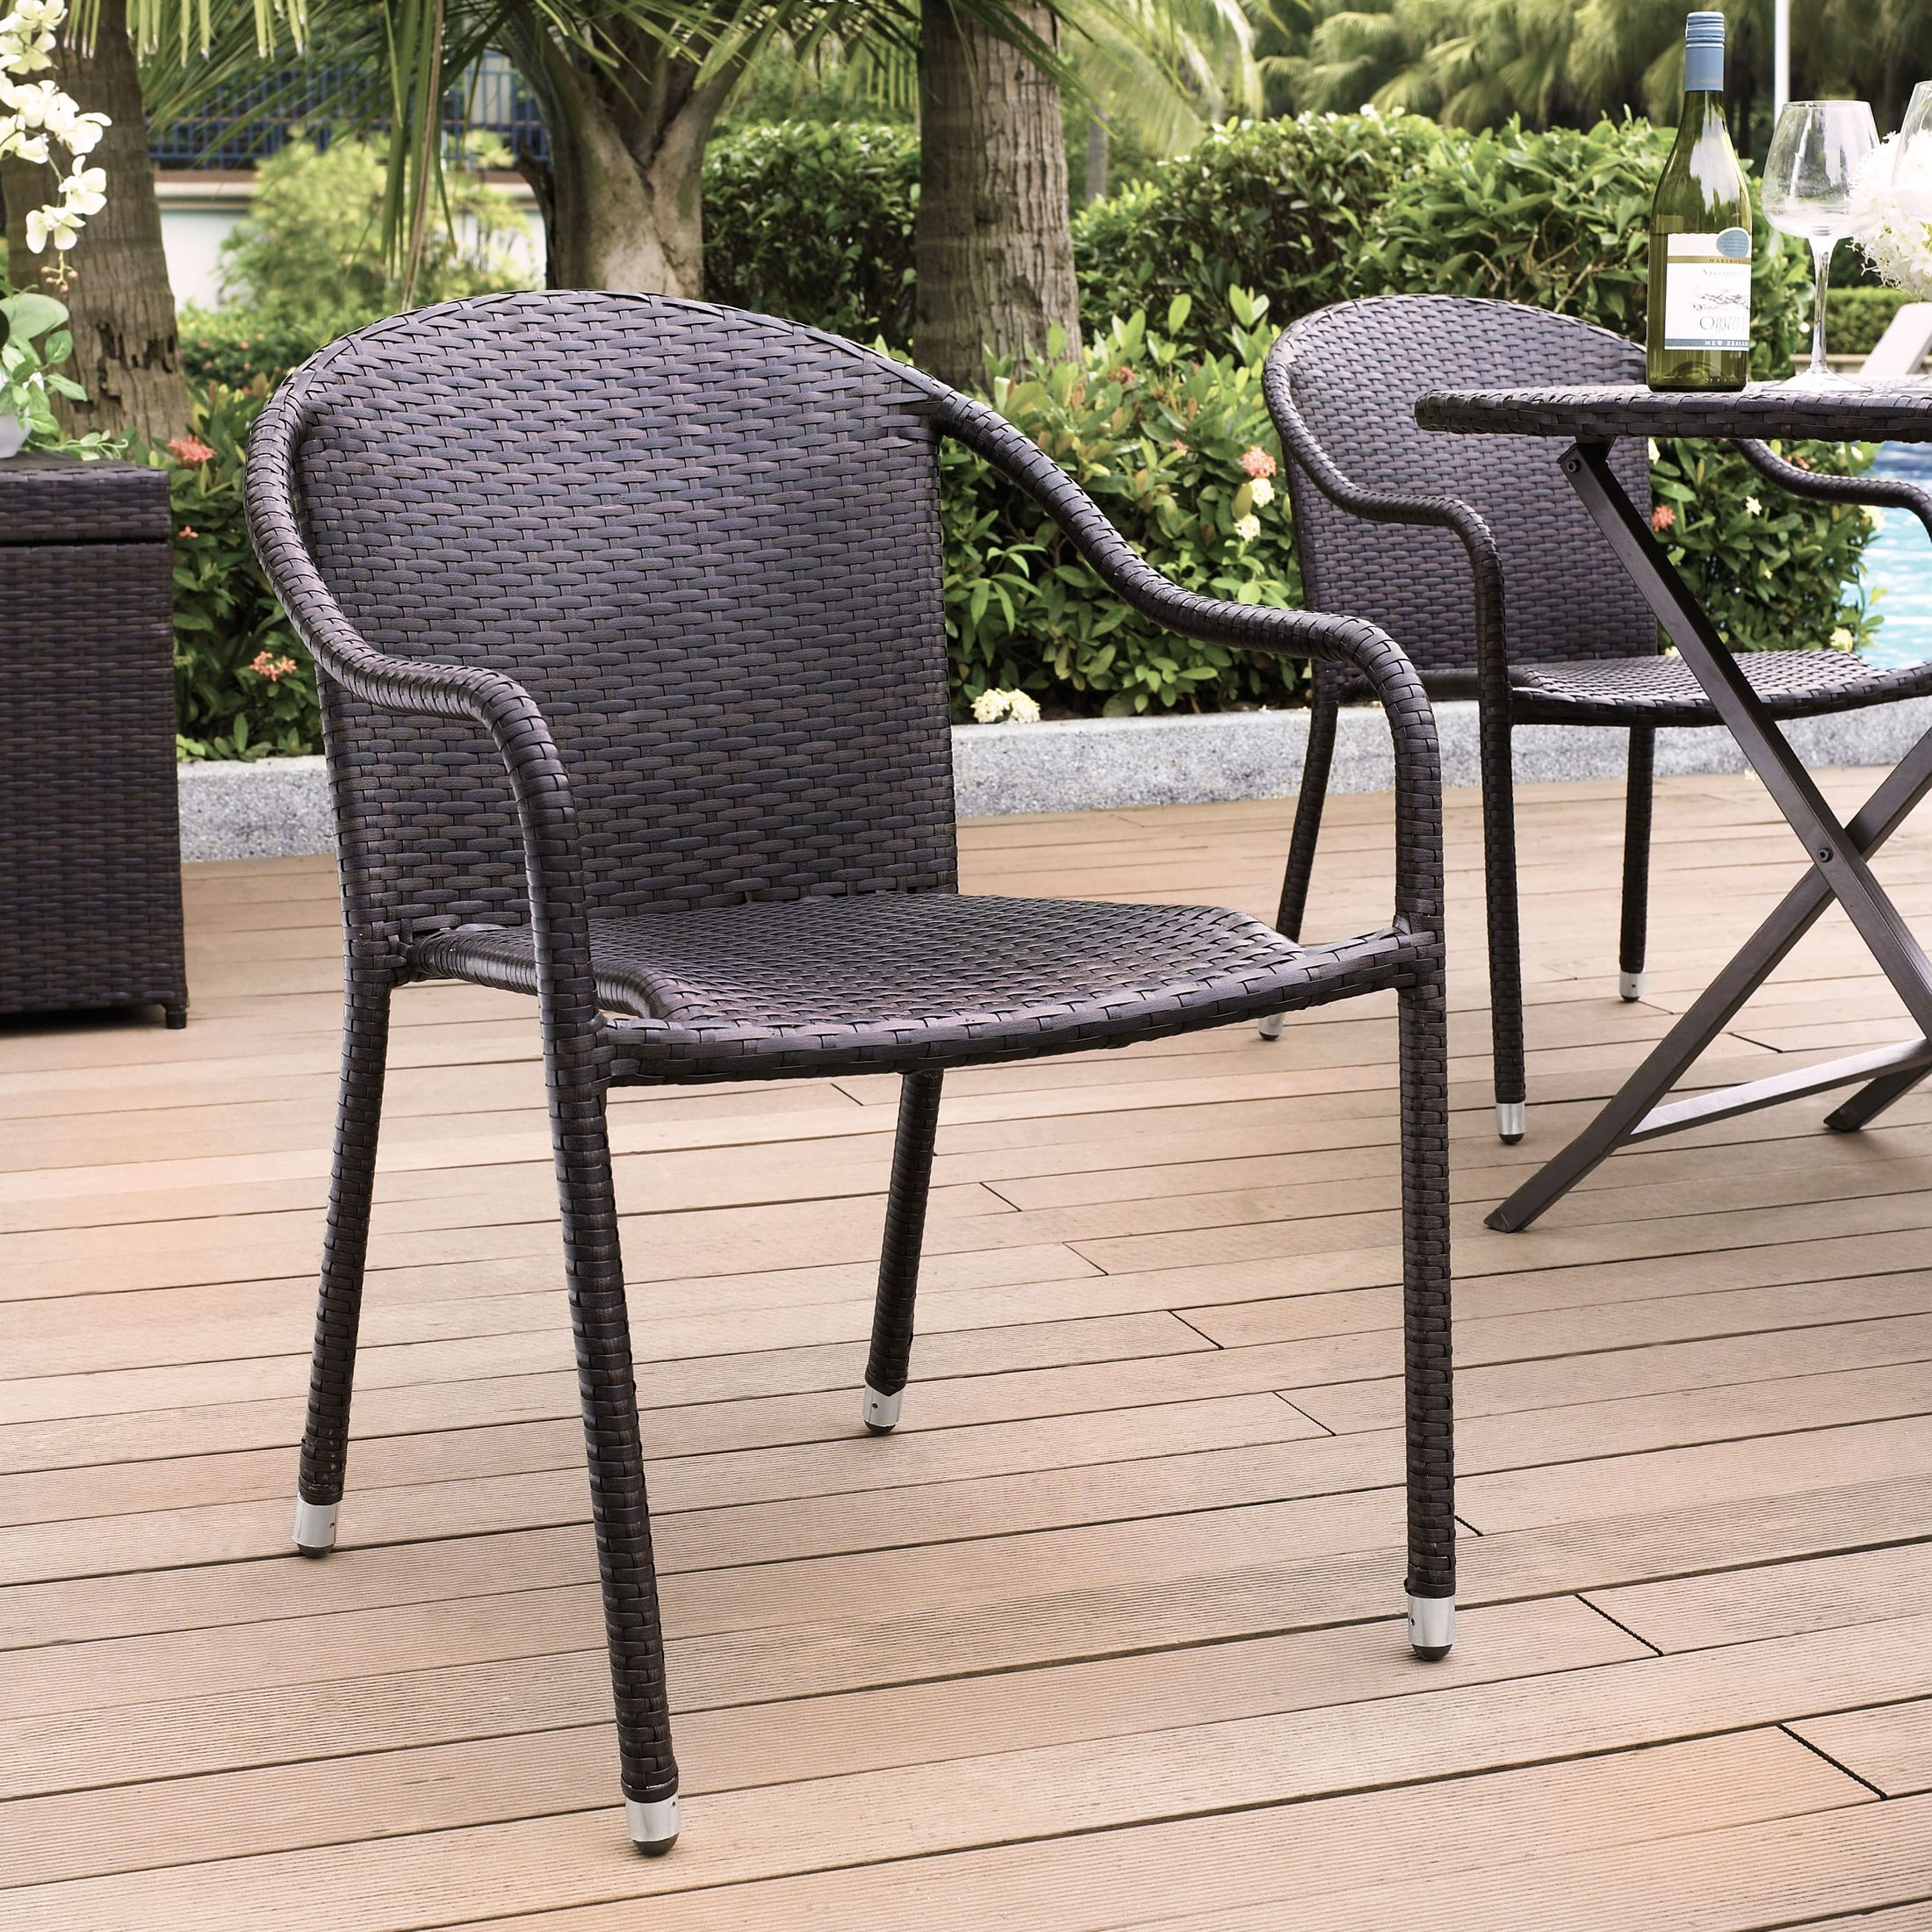 Outdoor Furniture - Aldo Set of 4 Stackable Outdoor Arm Chairs